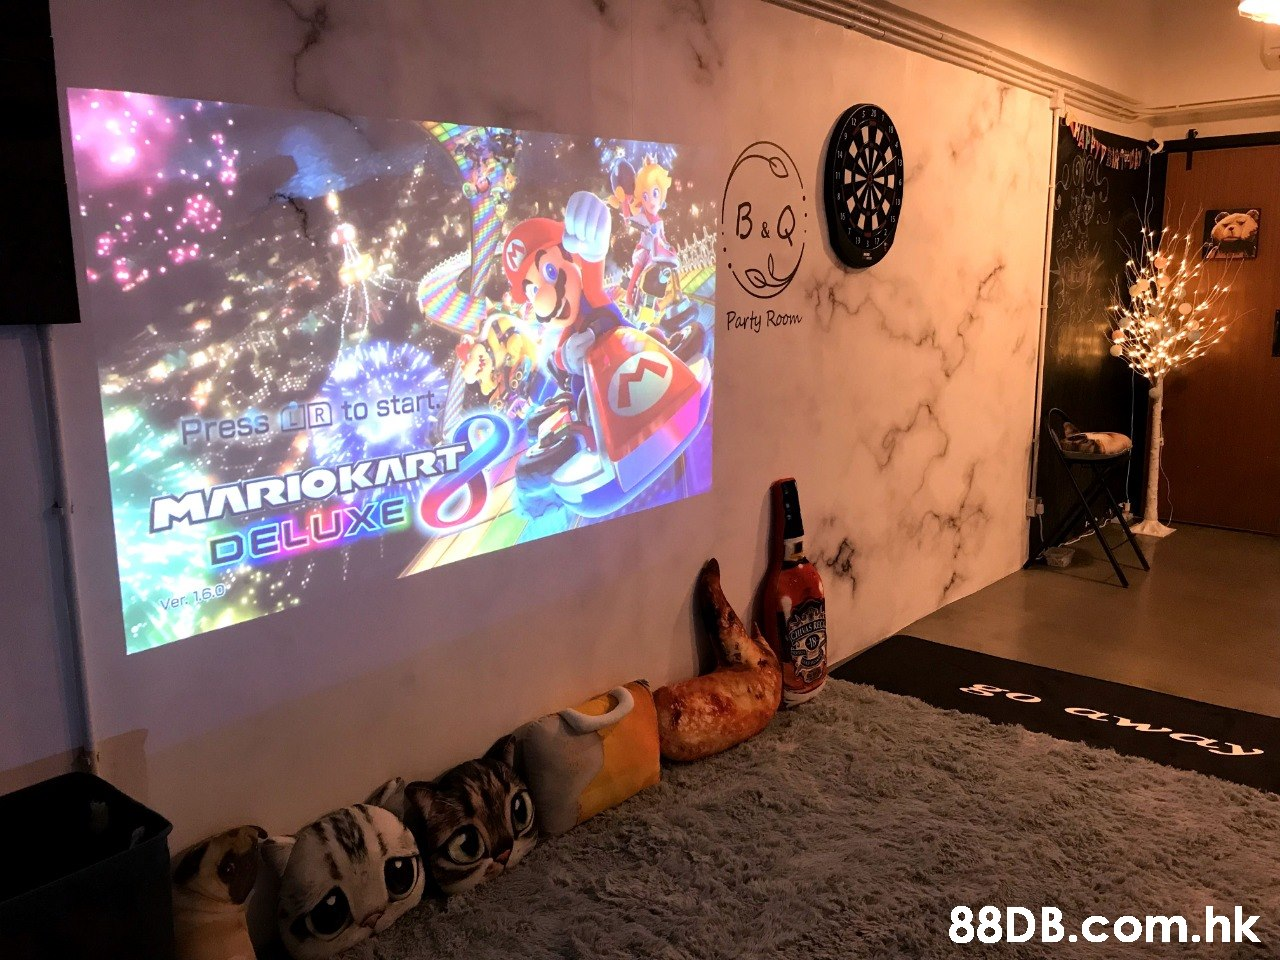 B&Q Party Room Press LR to start MARIOKART DELUXE Ver. 16.0 .hk  Wall,Art,Design,Technology,Visual arts